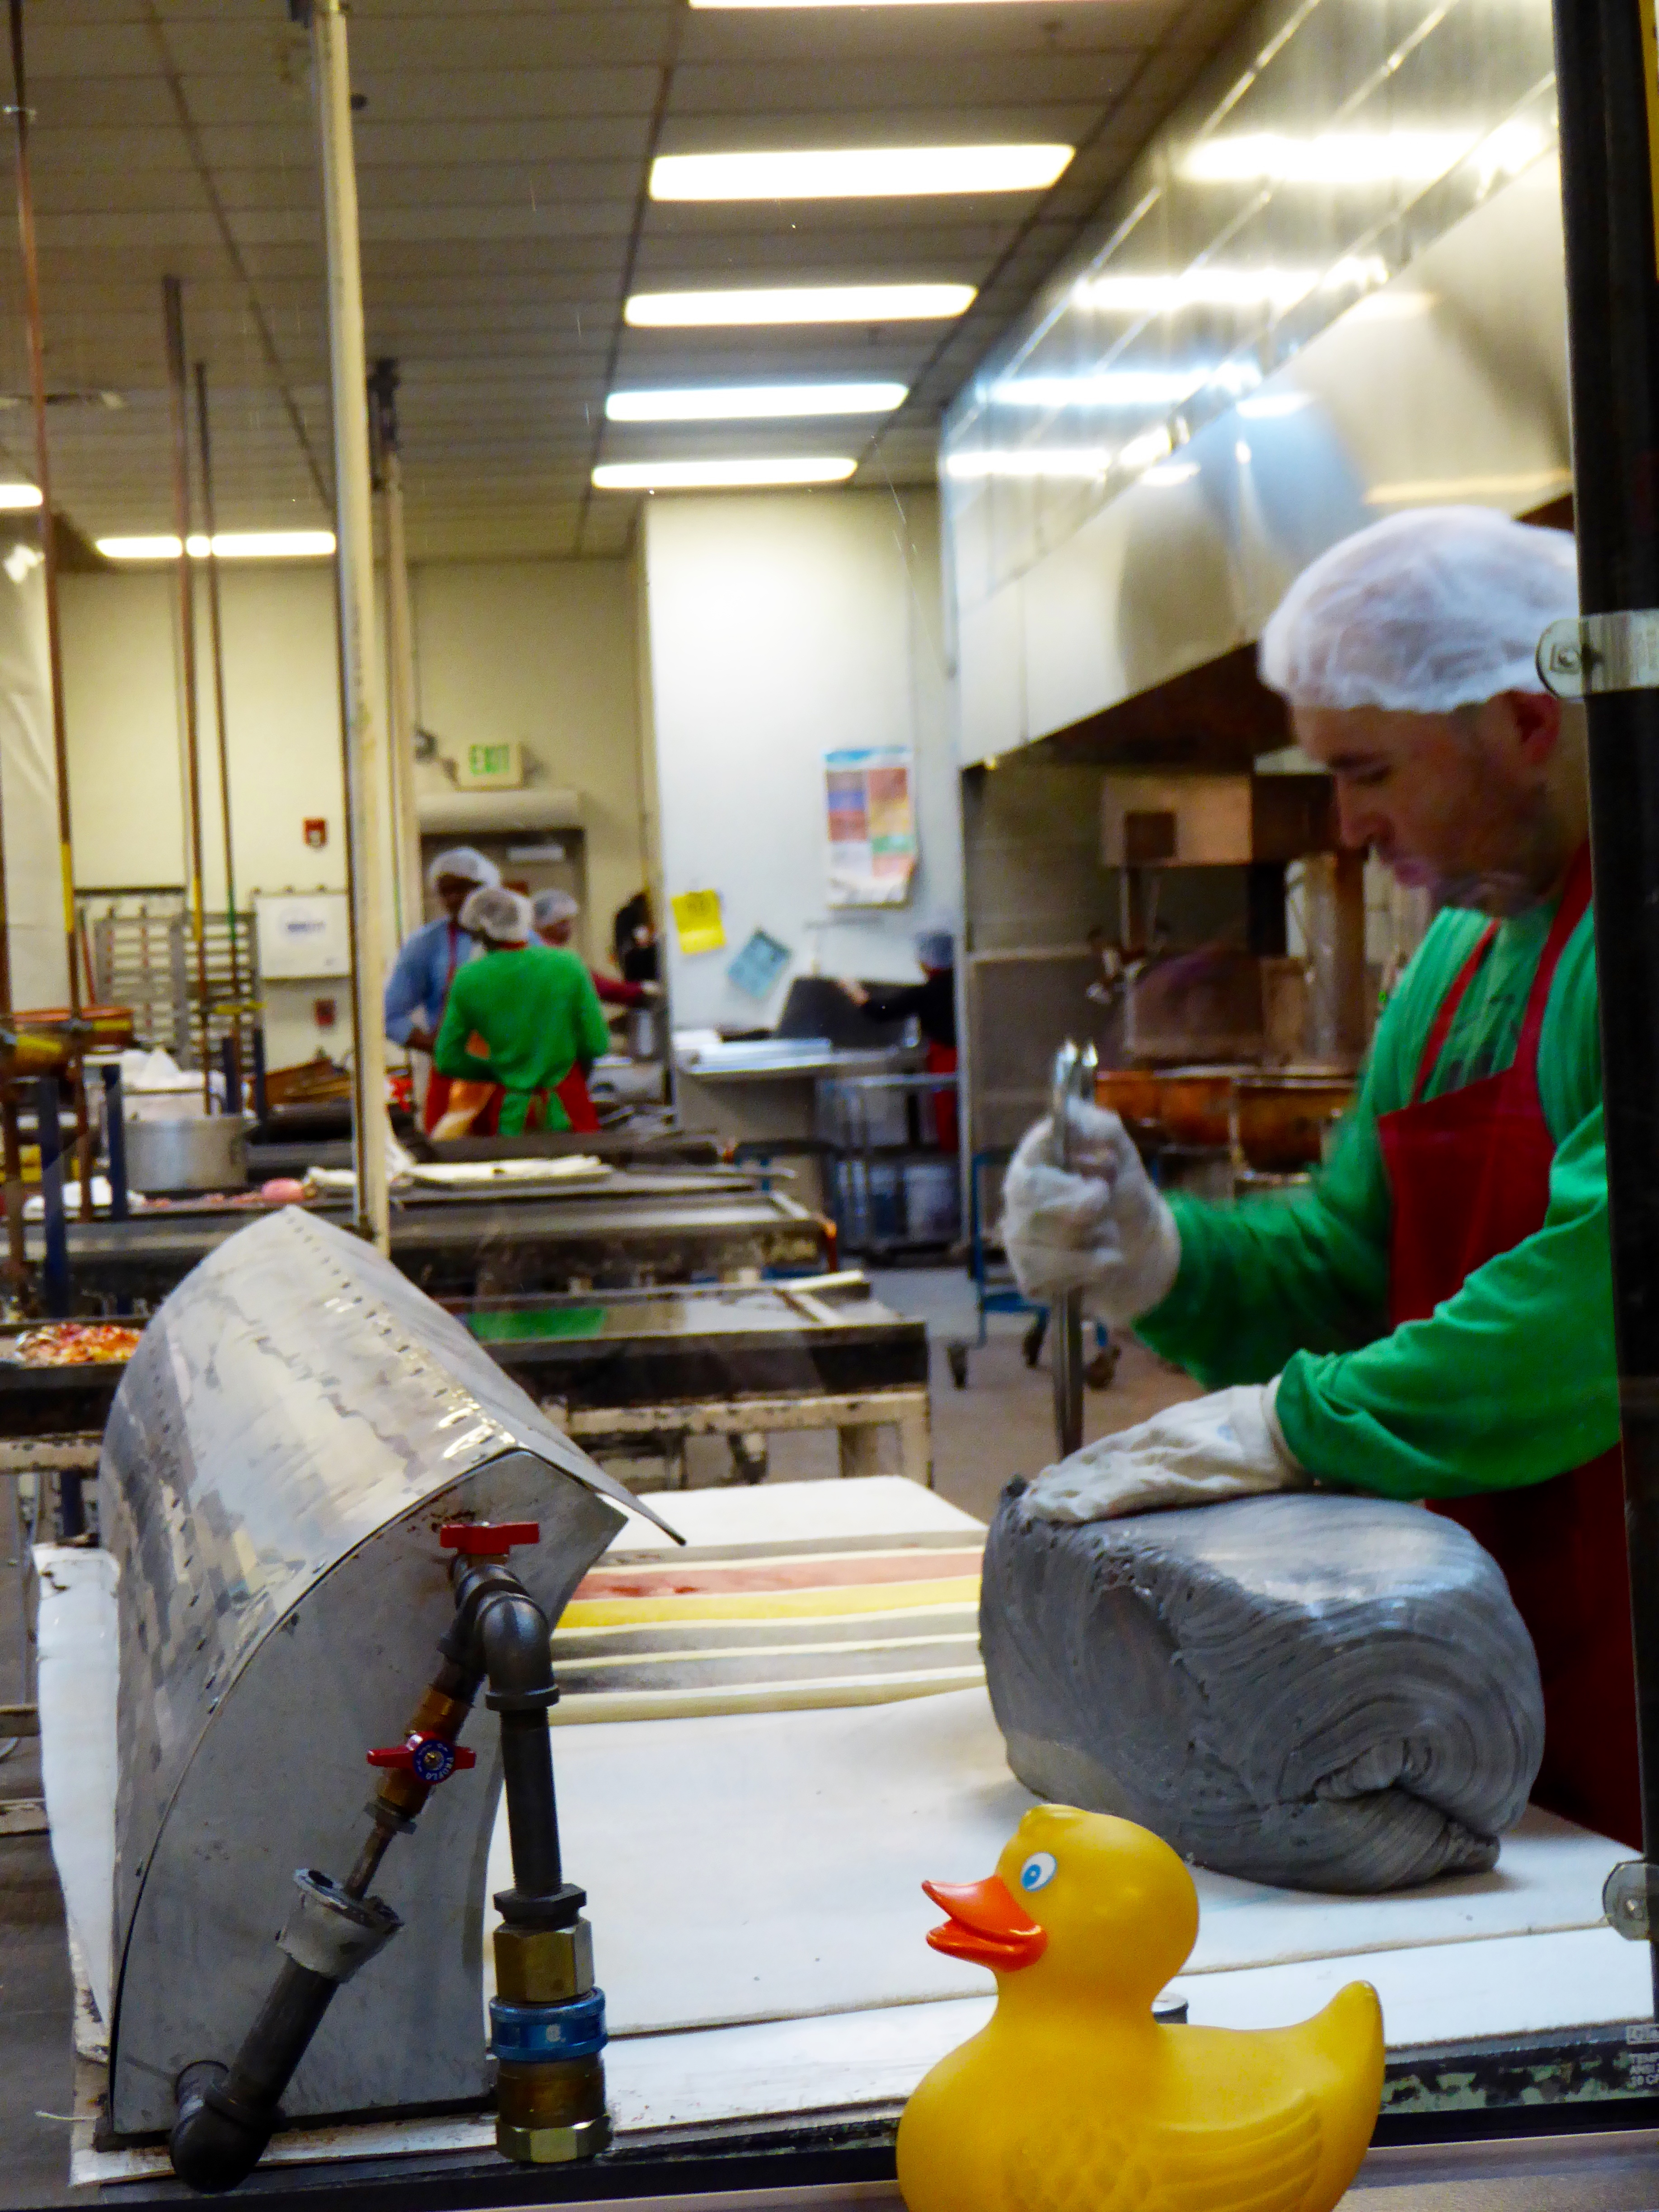 Touring Denver's Hammond's Candy Factory with Zeb the Duck